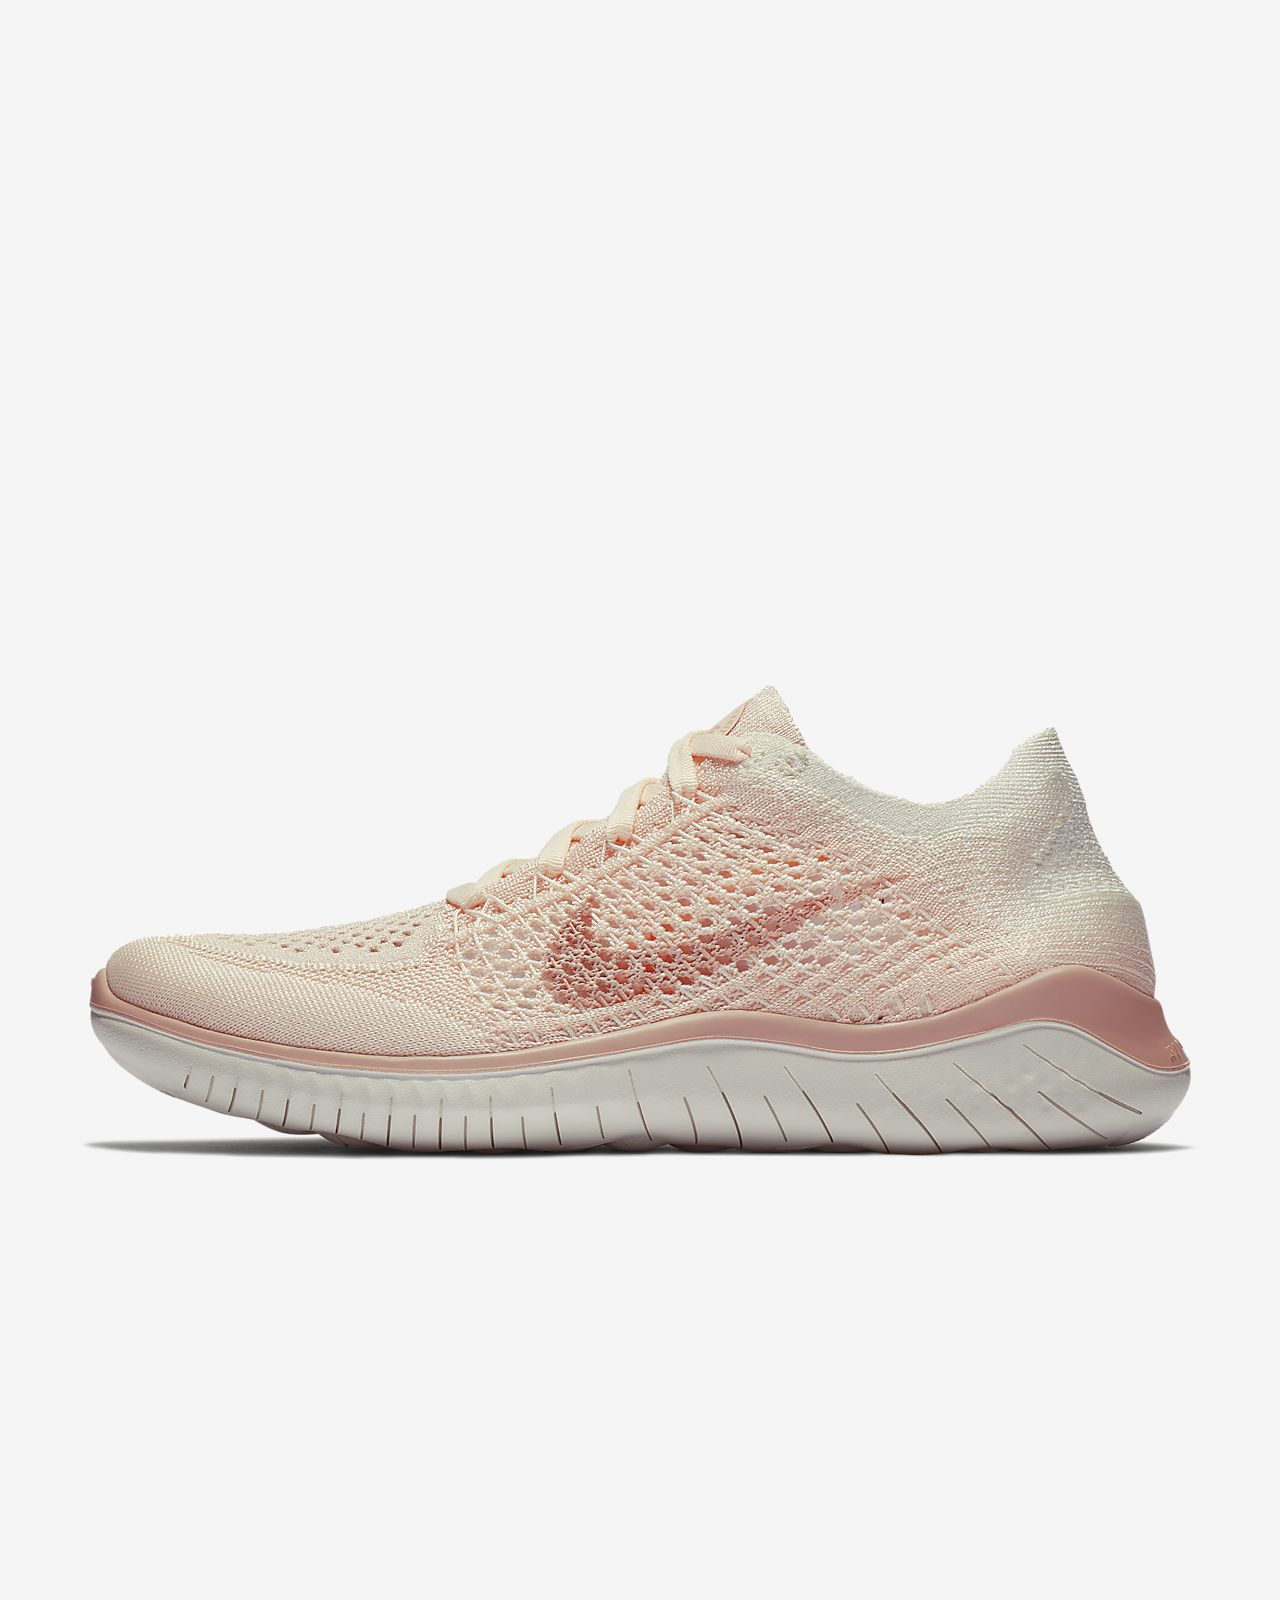 Ch Running 2018 De Nike Flyknit Free Femme Chaussure Rn Pour q1zwB5WYxn